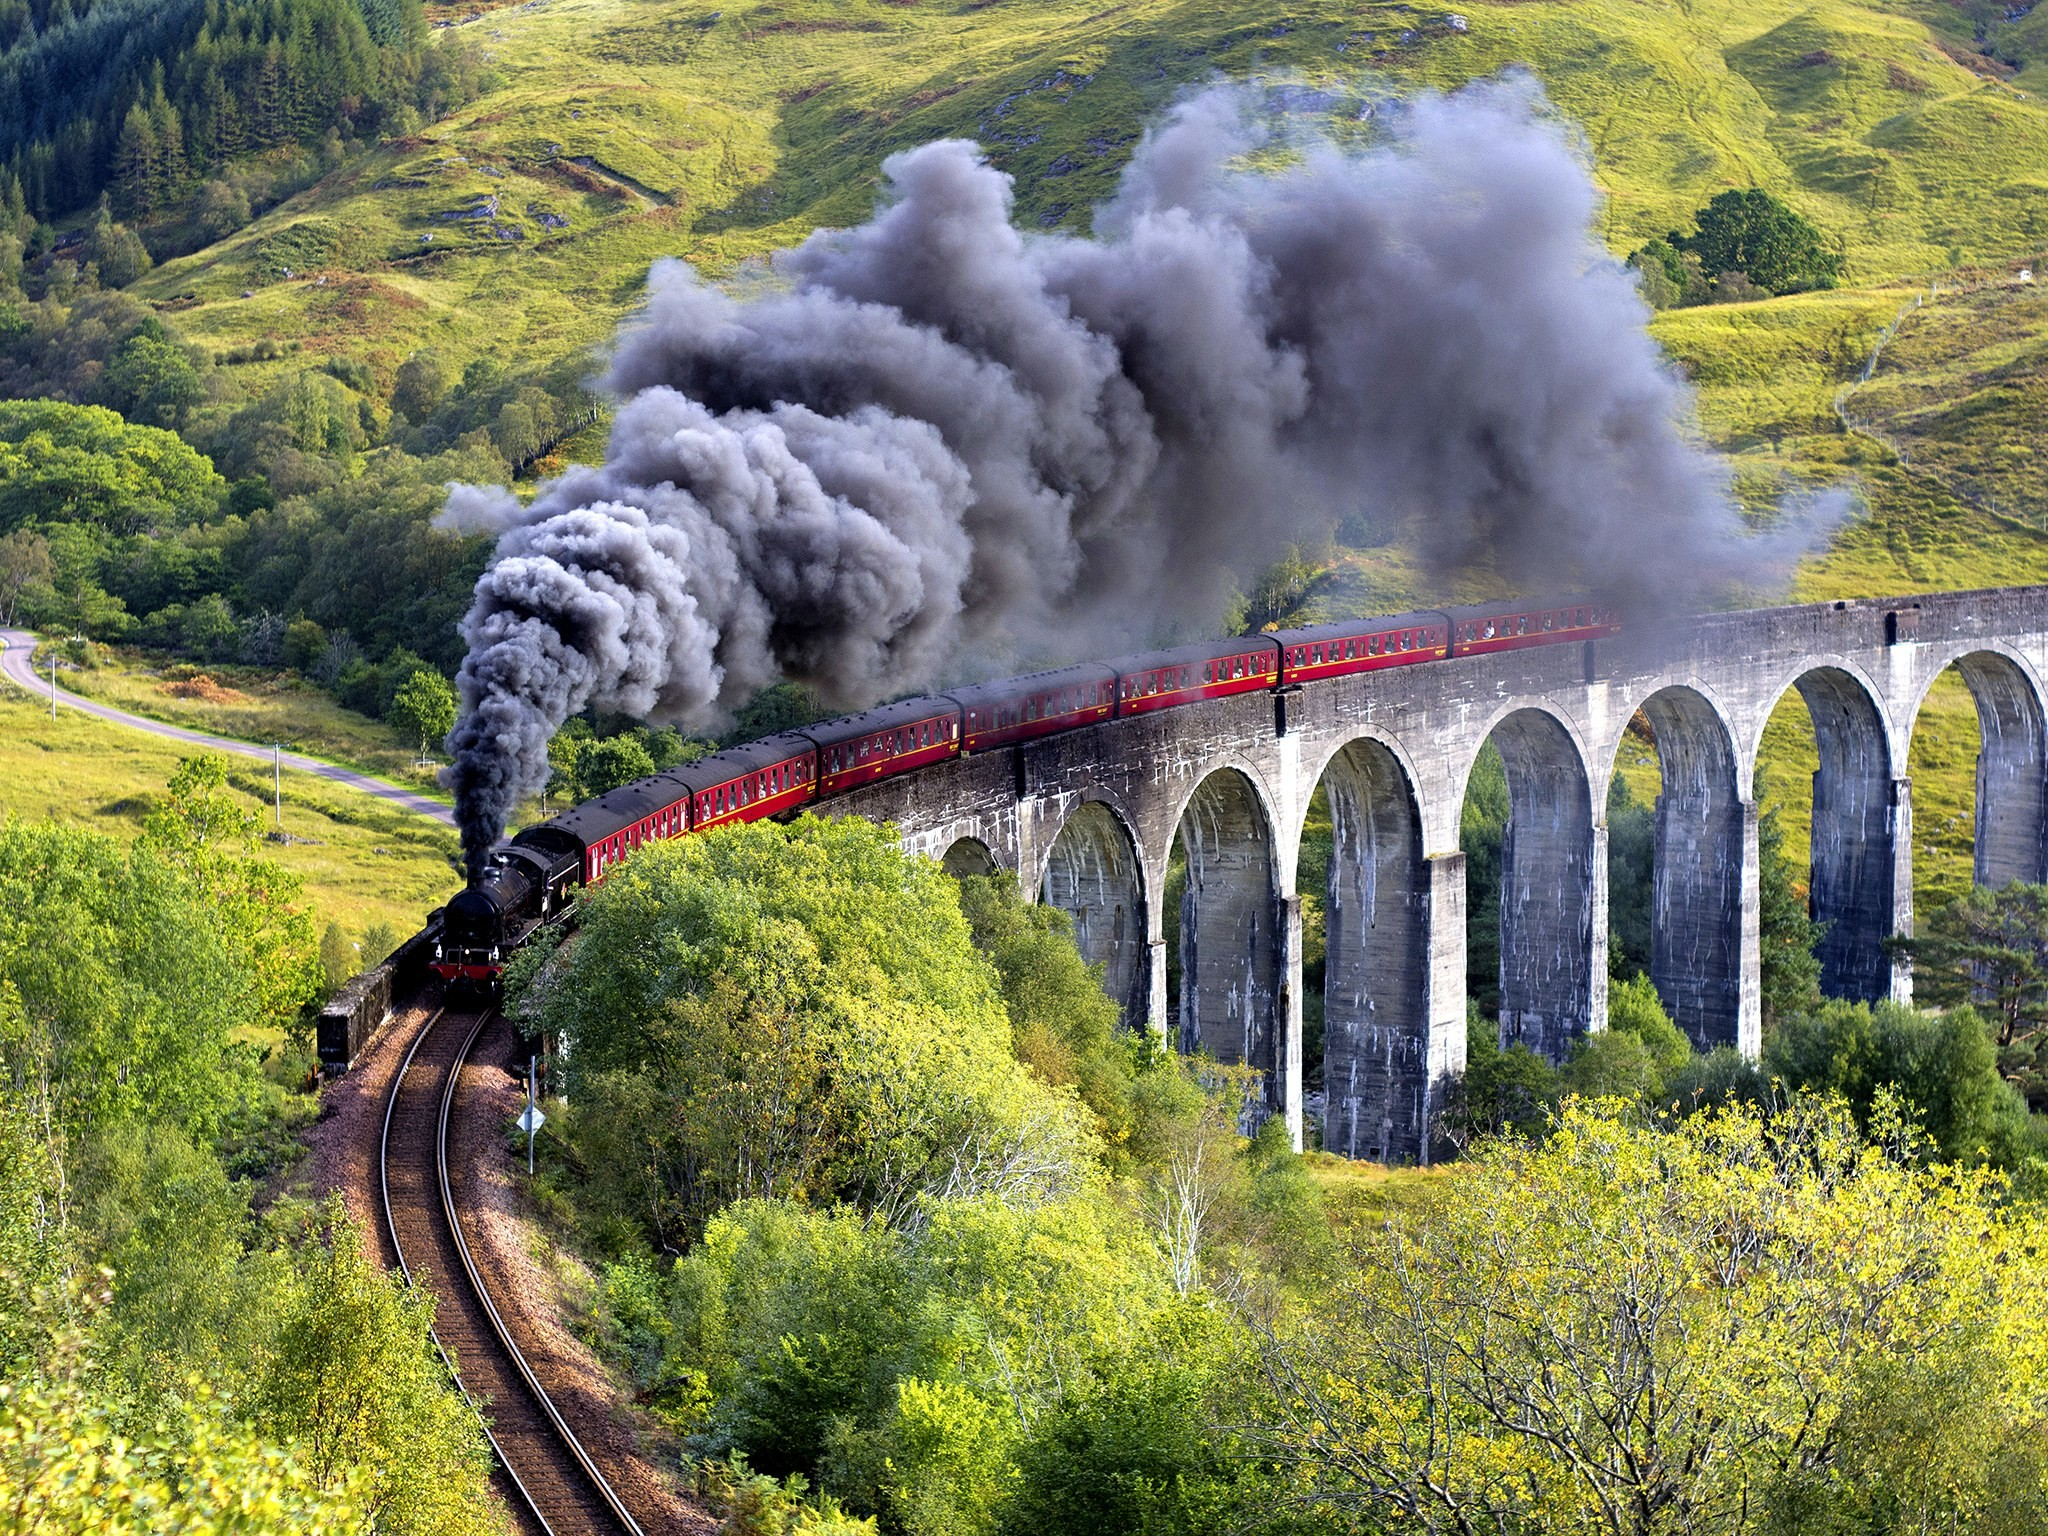 Res: 2048x1536, 'Hogwarts Express' Train Rescues Stranded Tourists in Scotland - Condé Nast  Traveler